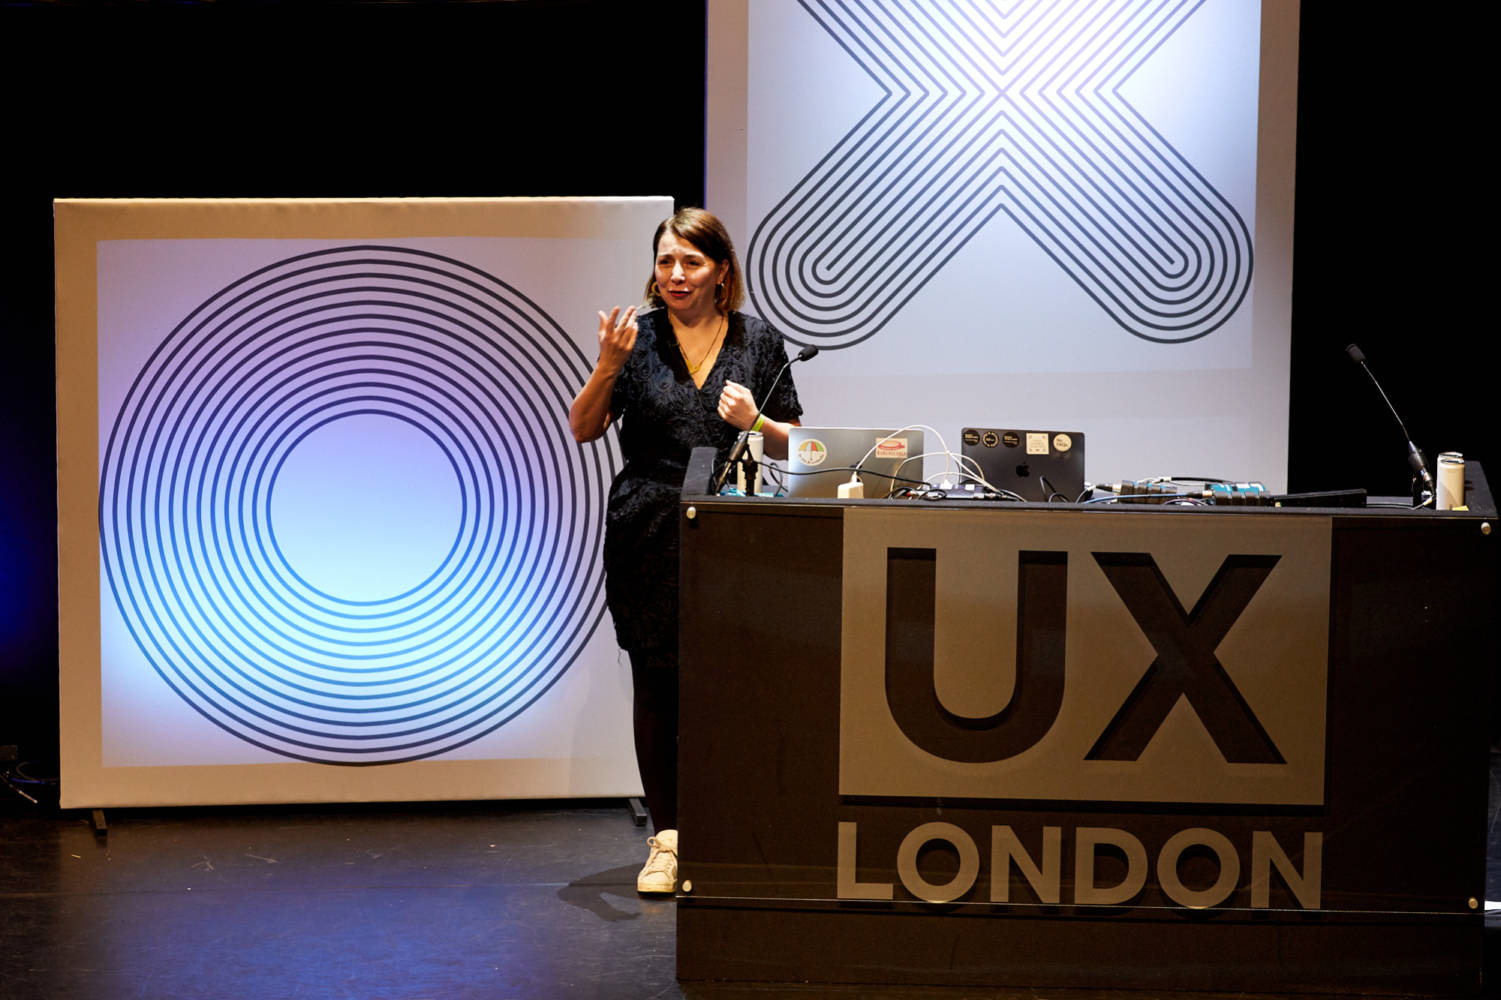 Uxlondon201900493 Copy